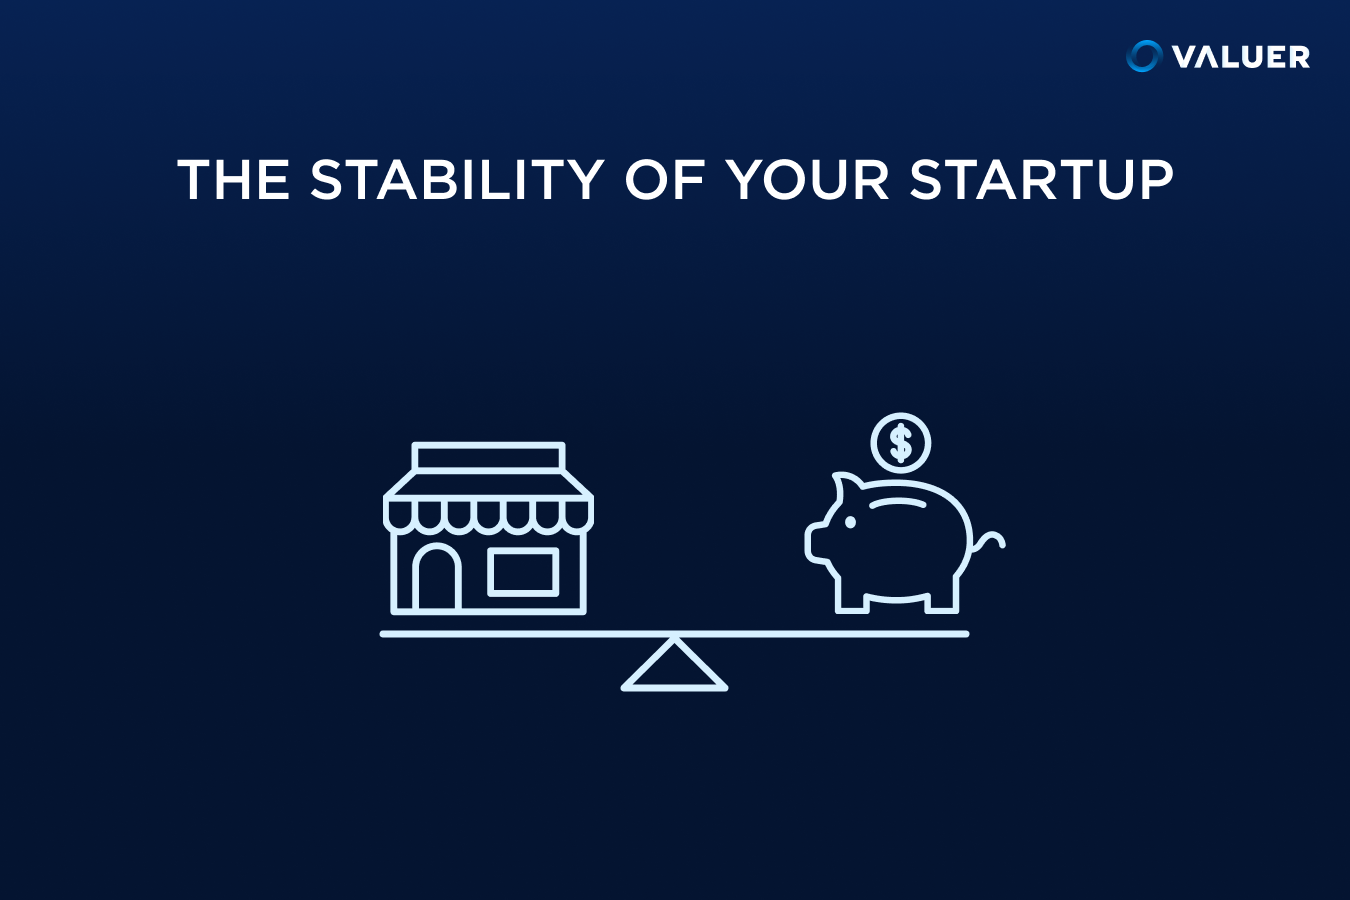 The stability of your Startup with an image of a store front and piggy bank on a teeter totter